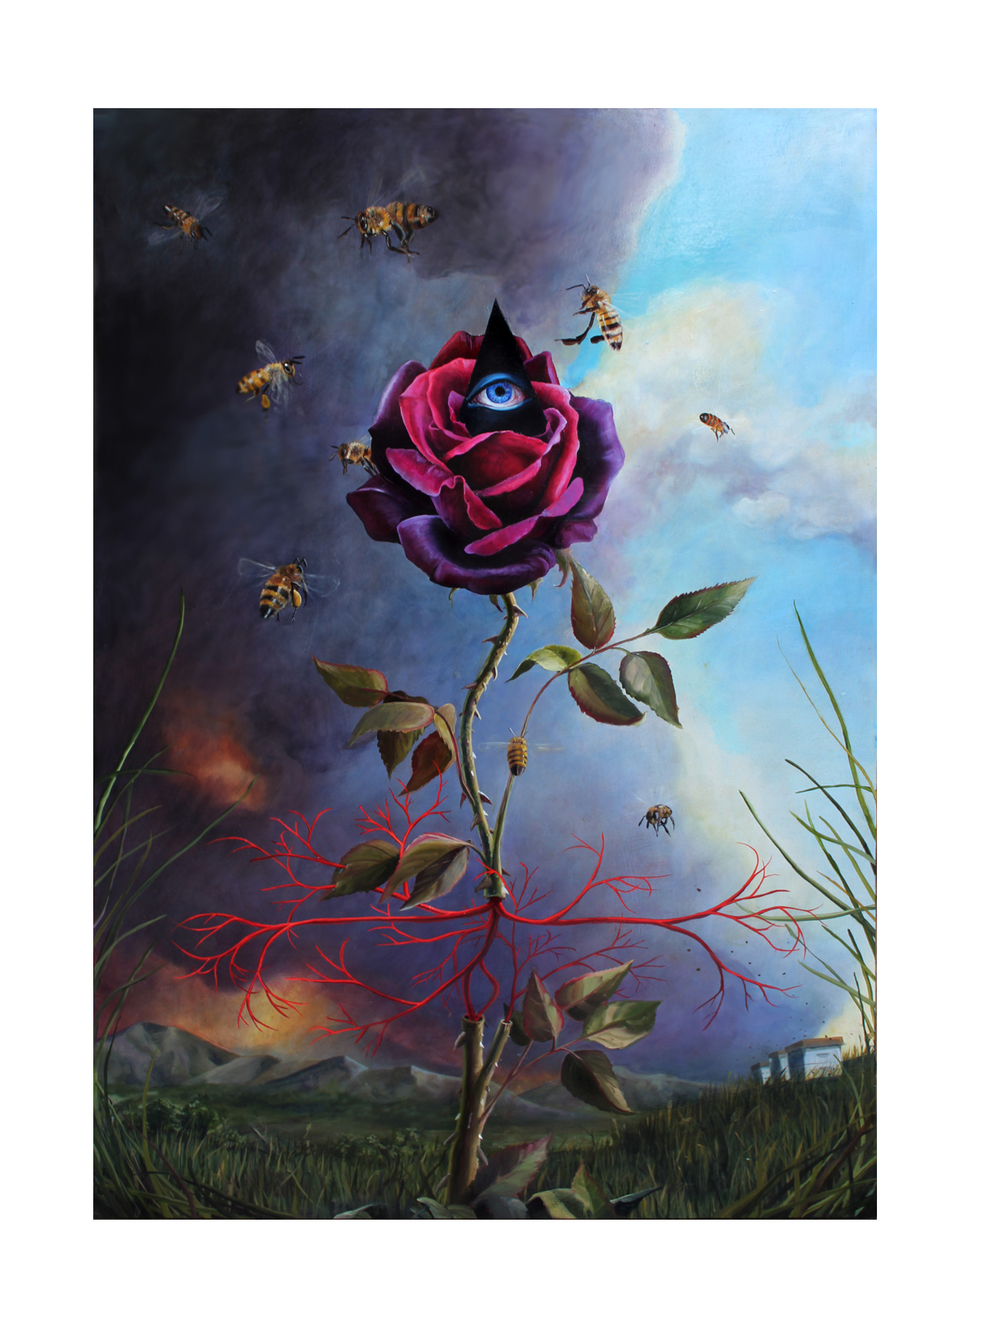 Scott.Dat Rosa Mel Apibus-The rose gives the bees honey.jpg